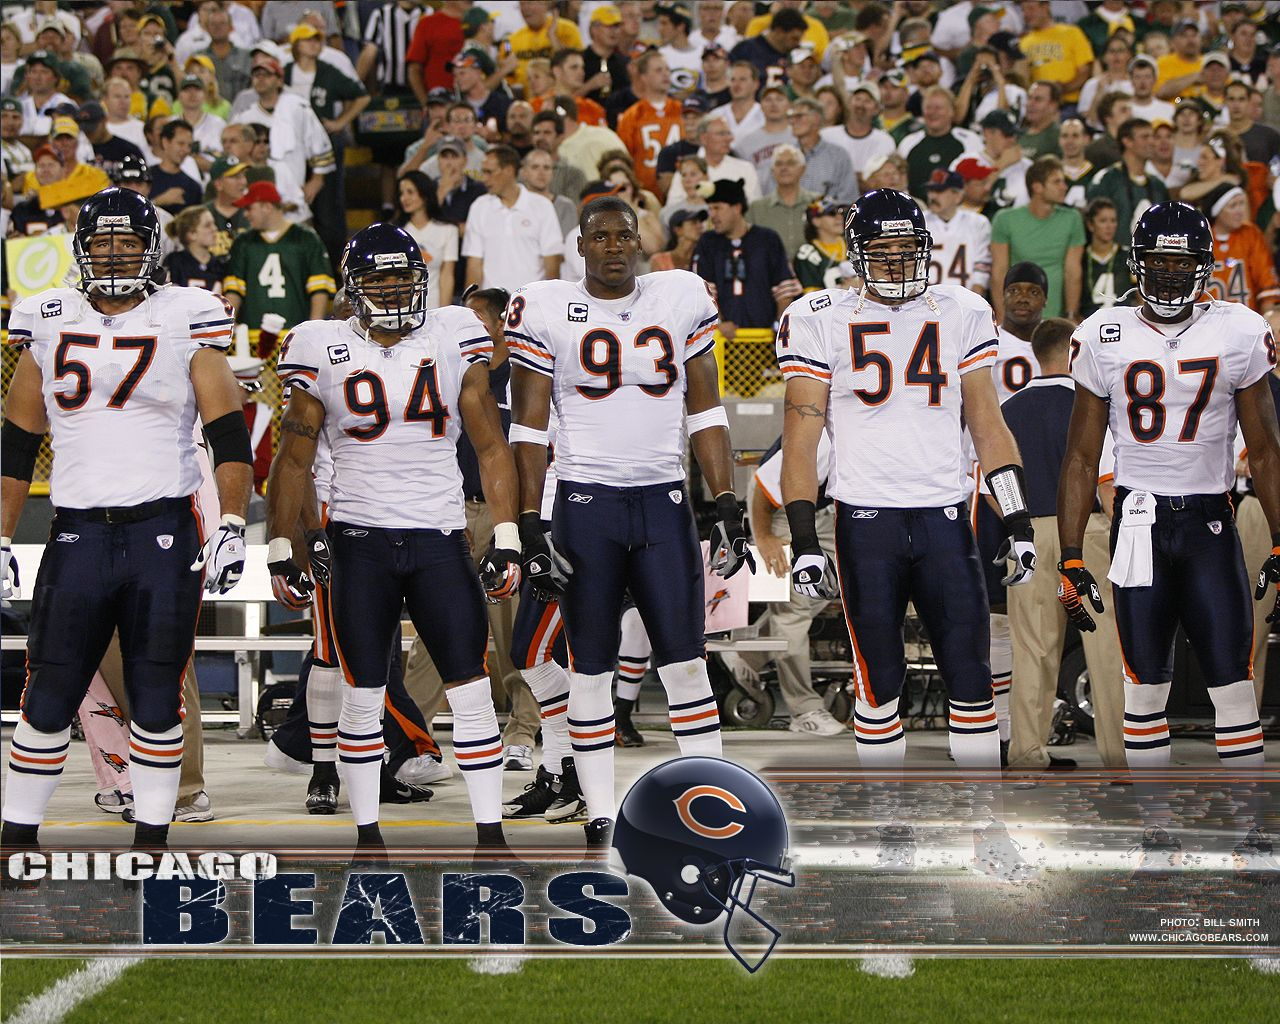 Chicago Bears Linemen Chicago Bears Football Chicago Bears Wallpaper Chicago Sports Teams